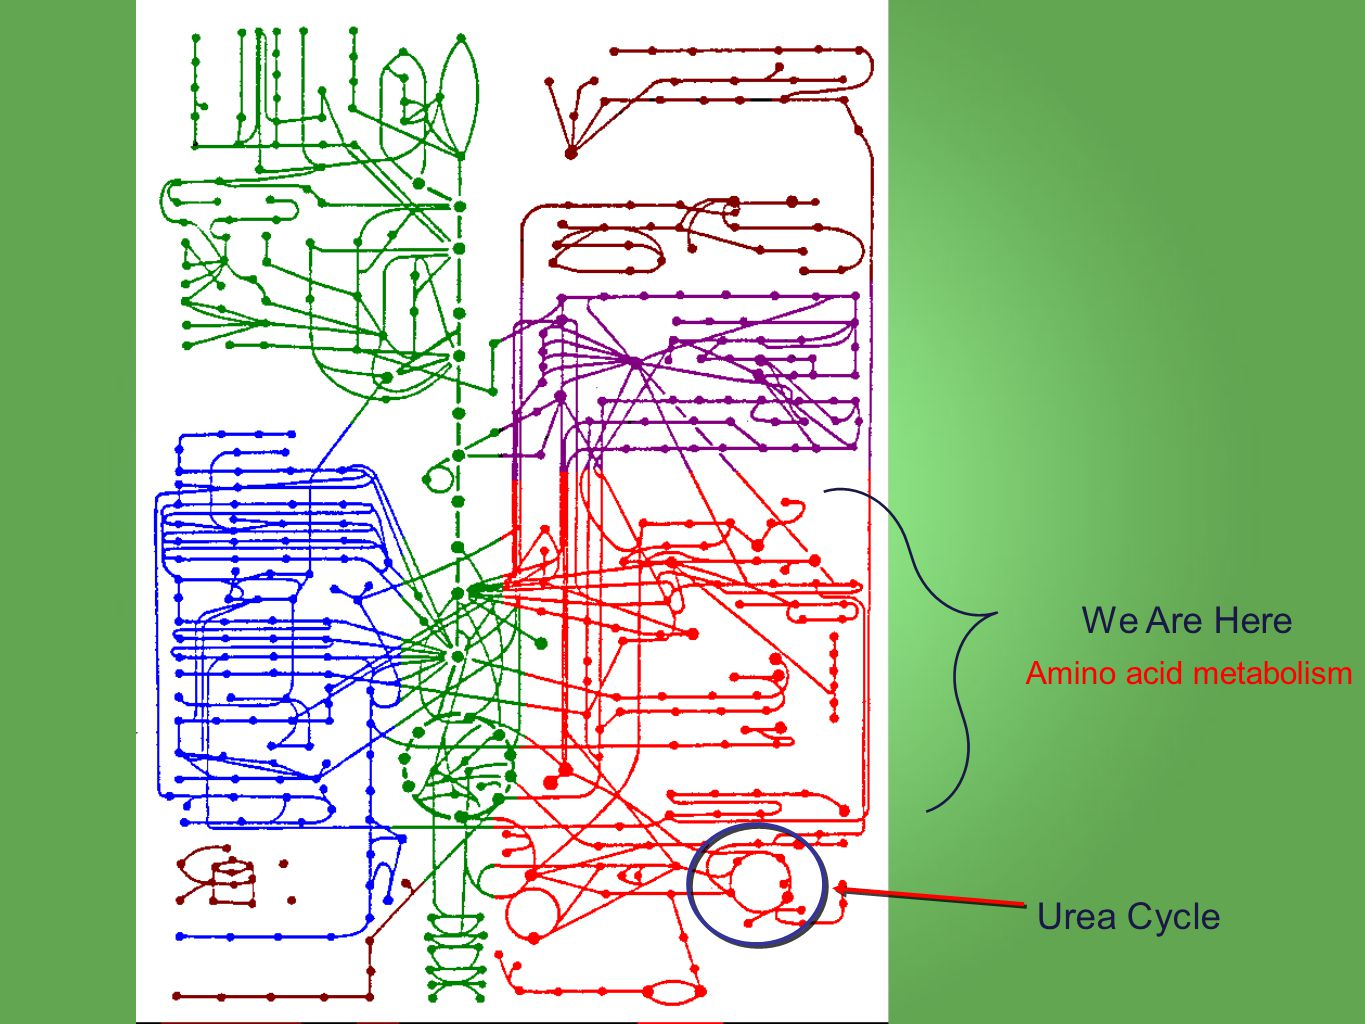 We Are Here Urea Cycle Amino acid metabolism